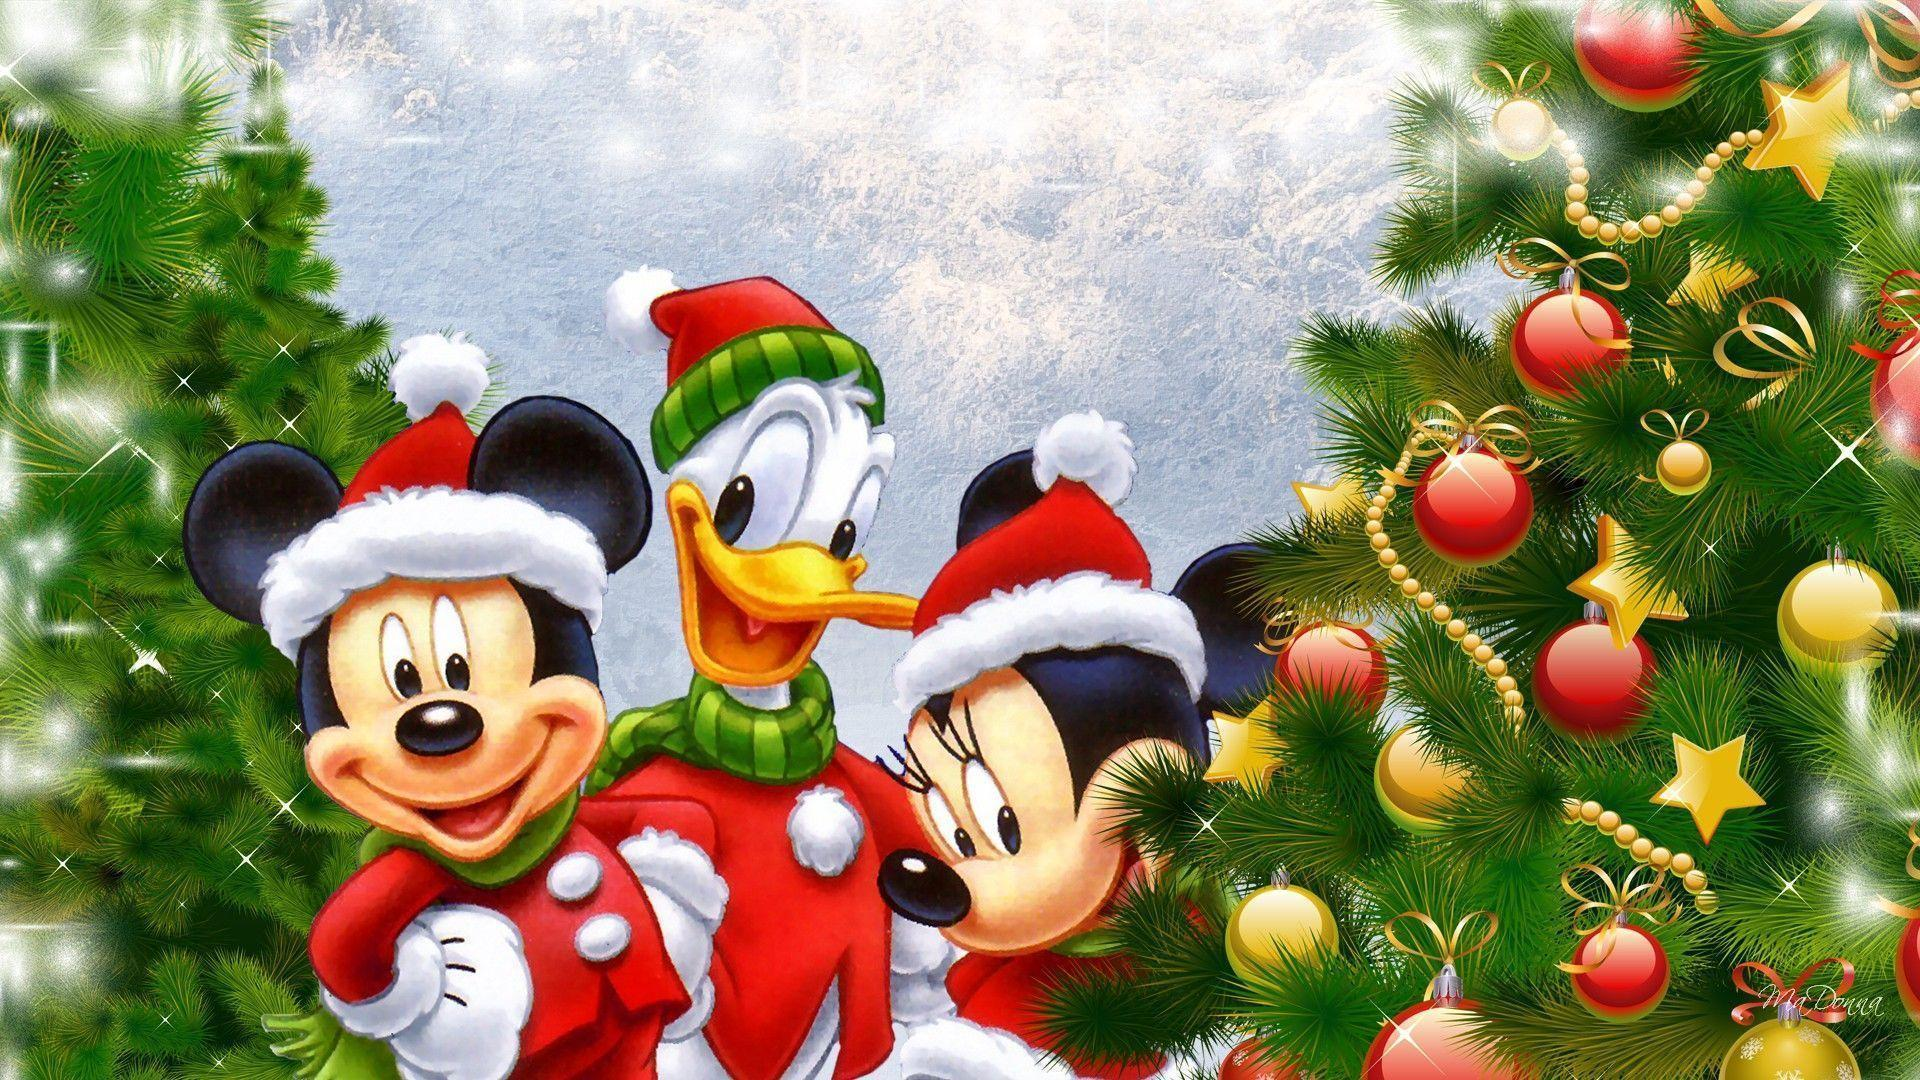 Disney Christmas Wallpapers Free Wallpaper Cave